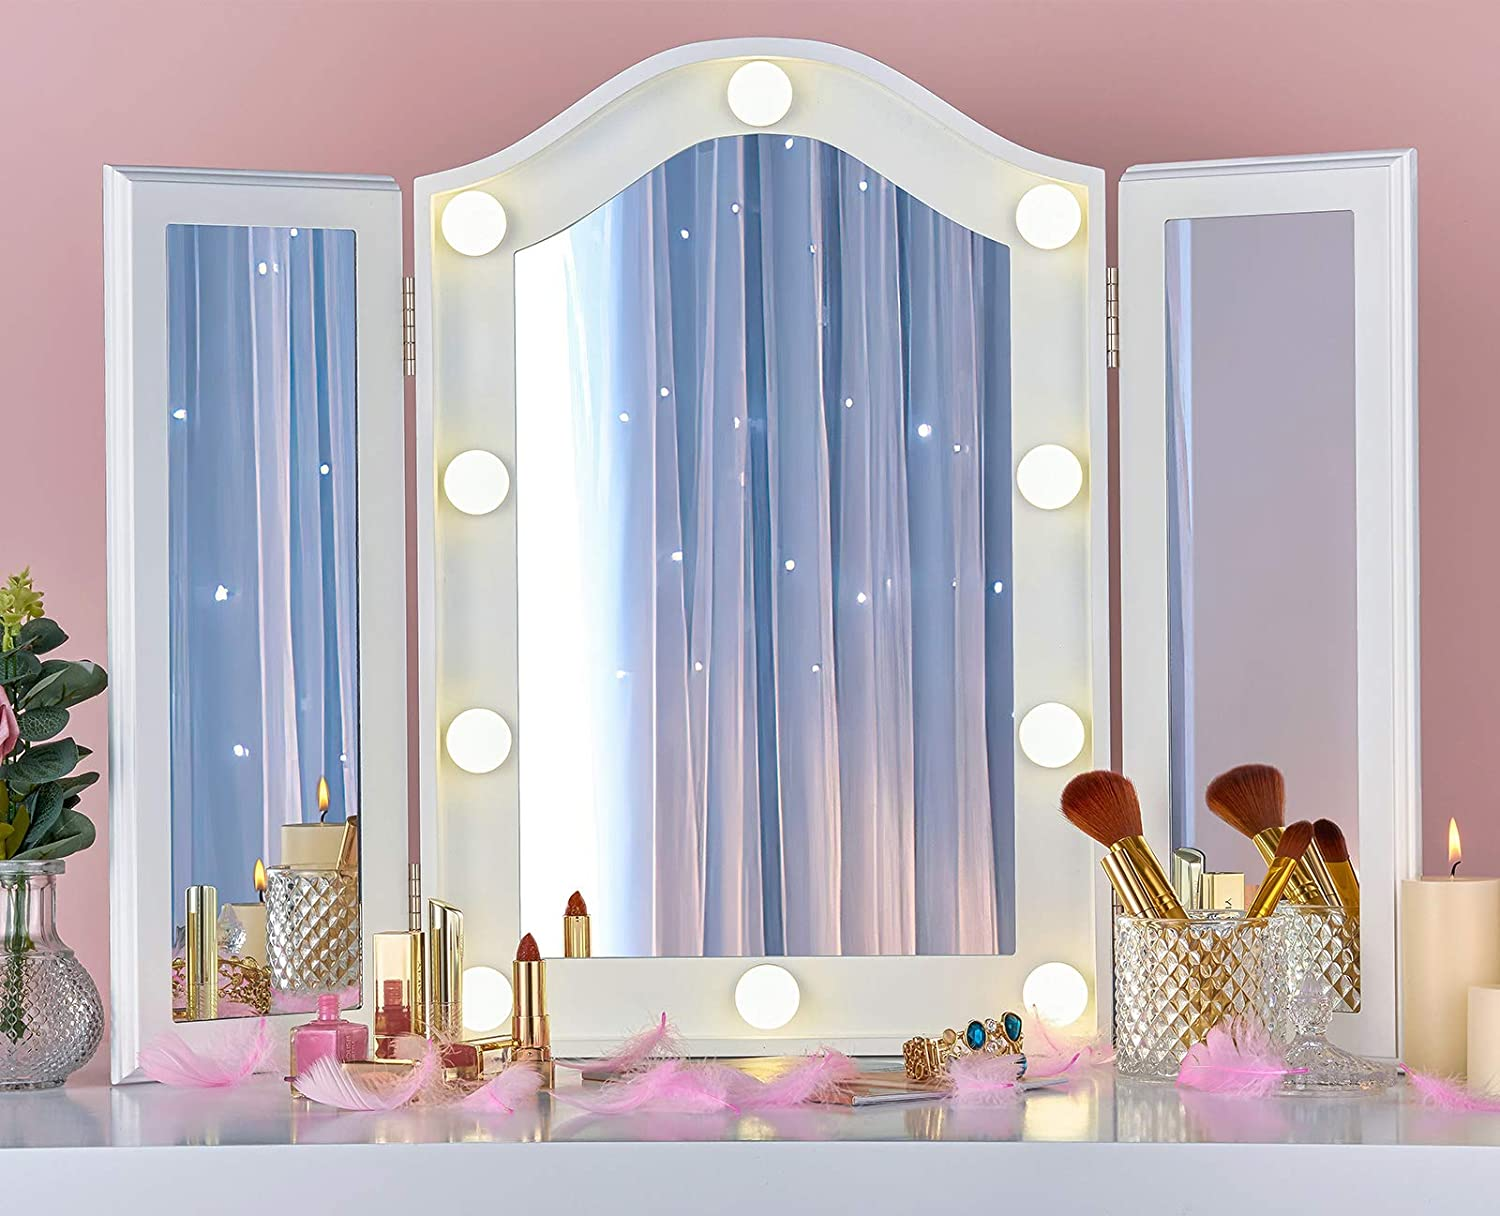 LUXFURNI Vanity Lighted Tri-fold Makeup Mirror